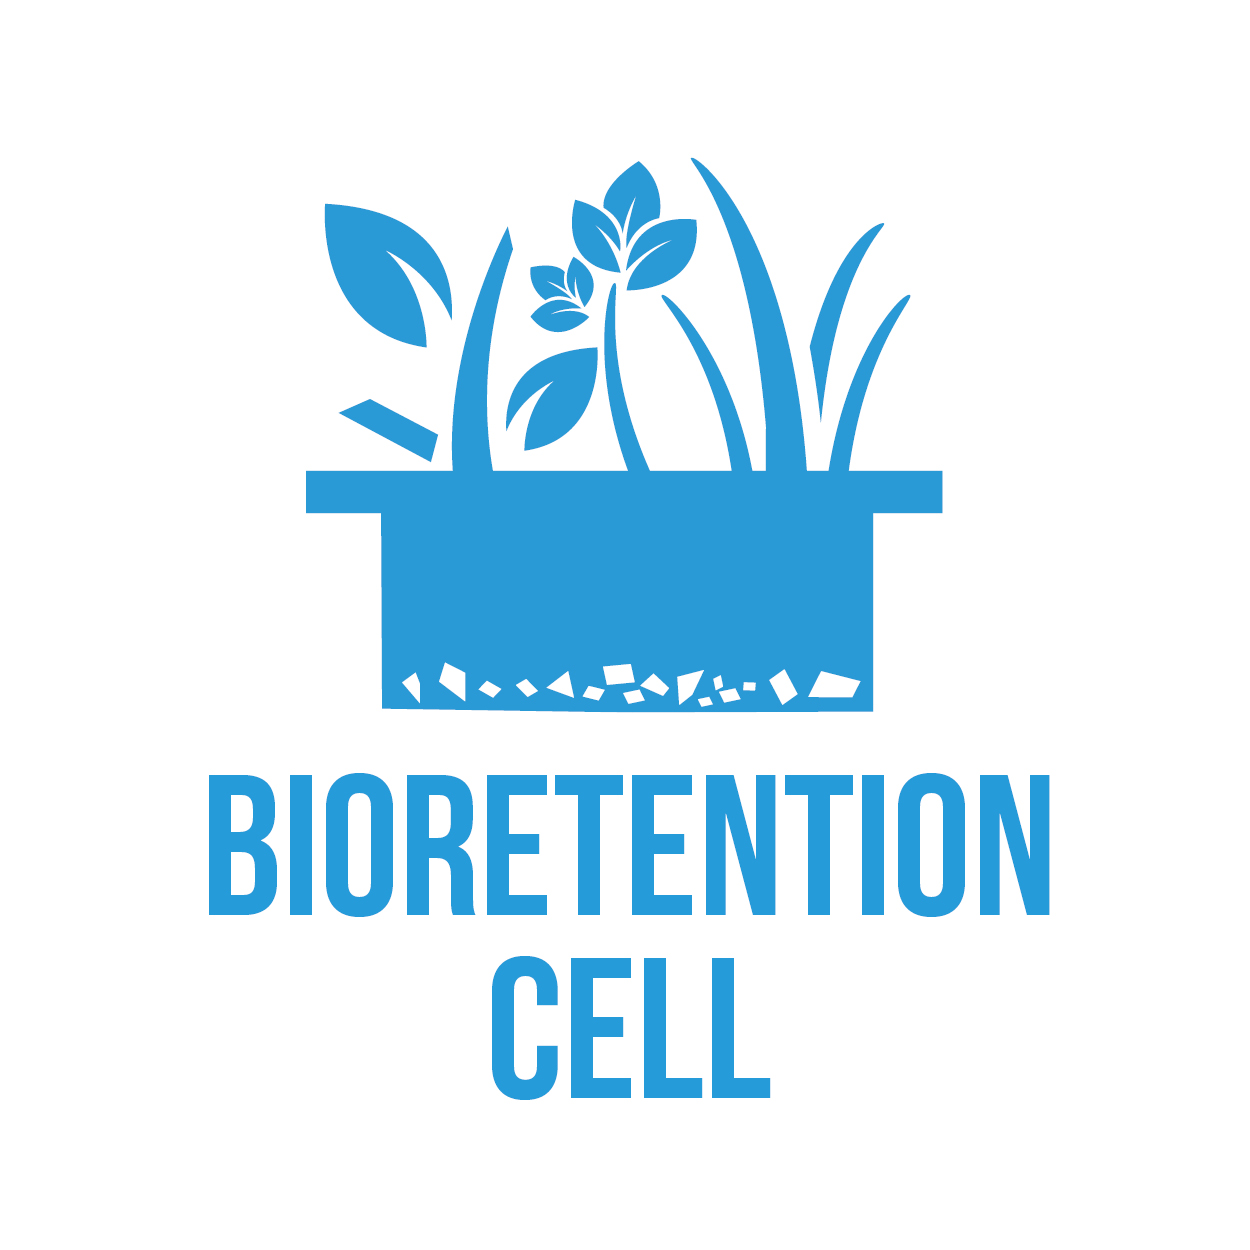 icon-bioretentioncell-square.jpg